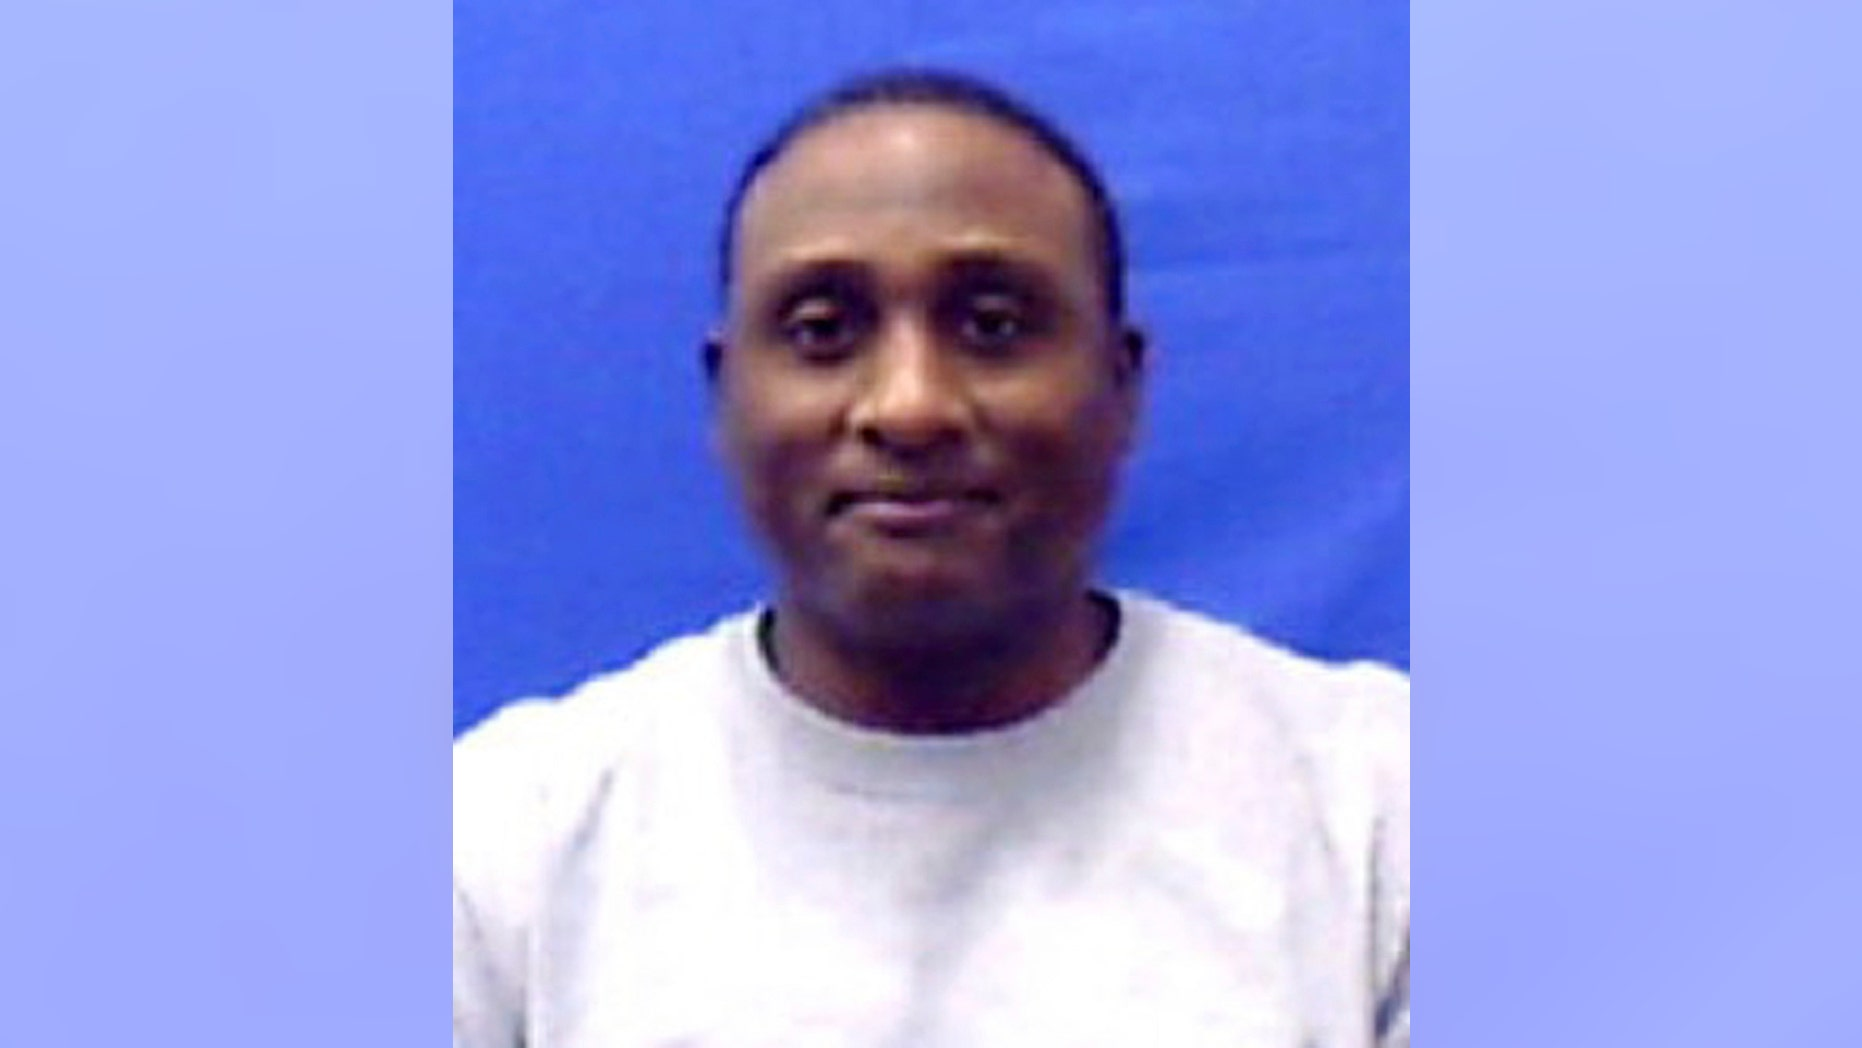 CORRECTS TO JOSHUA O. HARDY, NOT JOSHUA A. HARDY - This undated photo made available by the City of Virginia Beach, Va., on Saturday, June 1, 2019 shows Joshua O. Hardy. Hardy was one of twelve people killed in a shooting Friday, May 31, 2019, at a Virginia Beach municipal building. Hardy was an engineering technician. (City of Virginia Beach via AP)